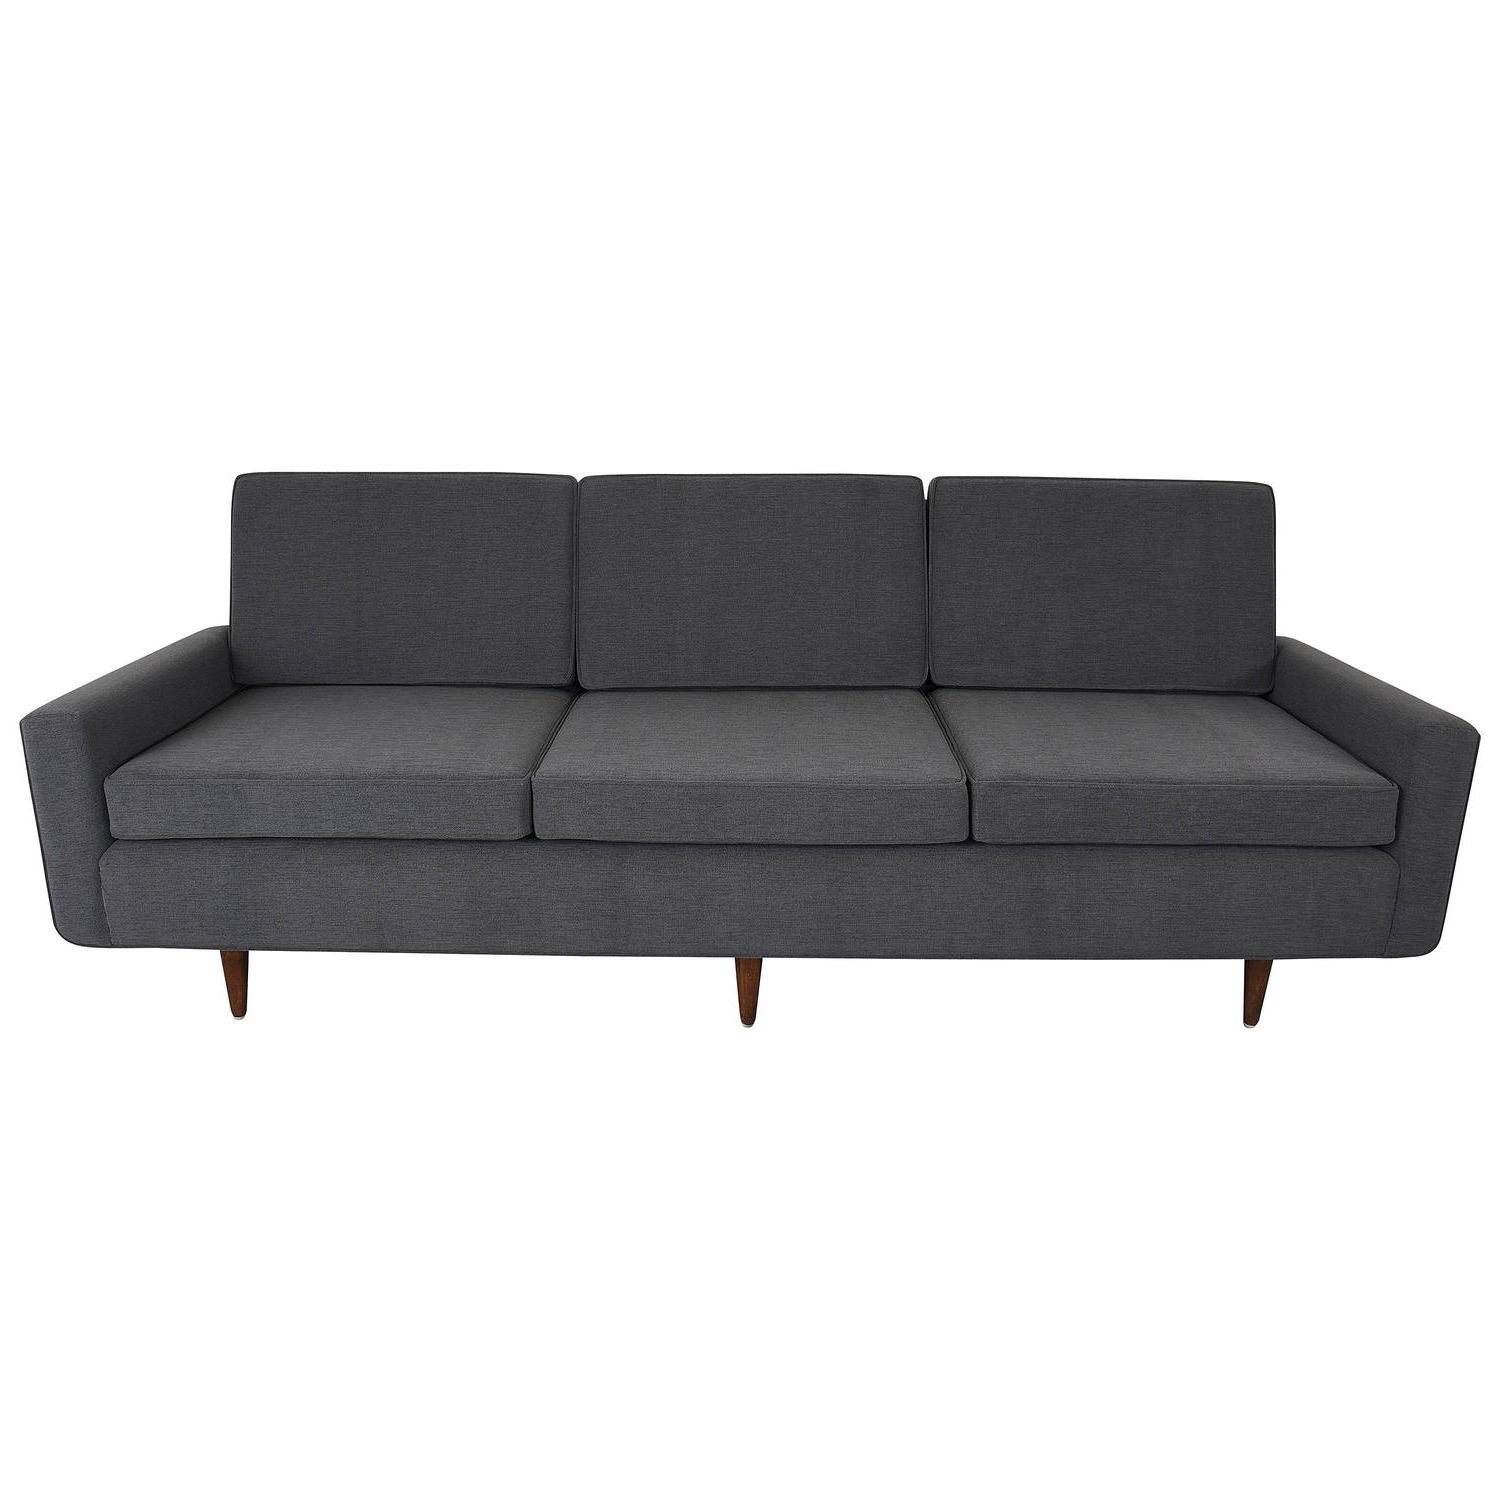 Florence Knoll Sofas – 61 For Sale At 1Stdibs Within Famous Florence Medium Sofas (View 13 of 15)